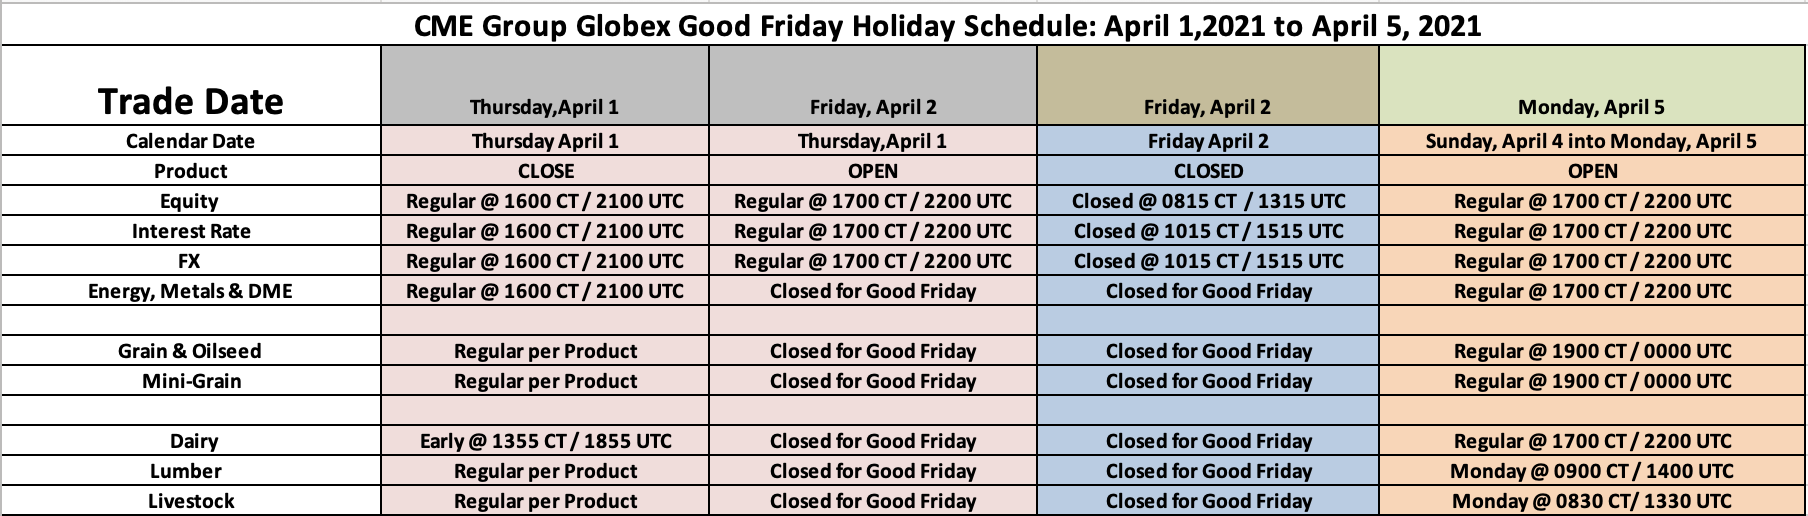 CME Group Globex Good Friday Holiday Schedule April 1-5, 2021